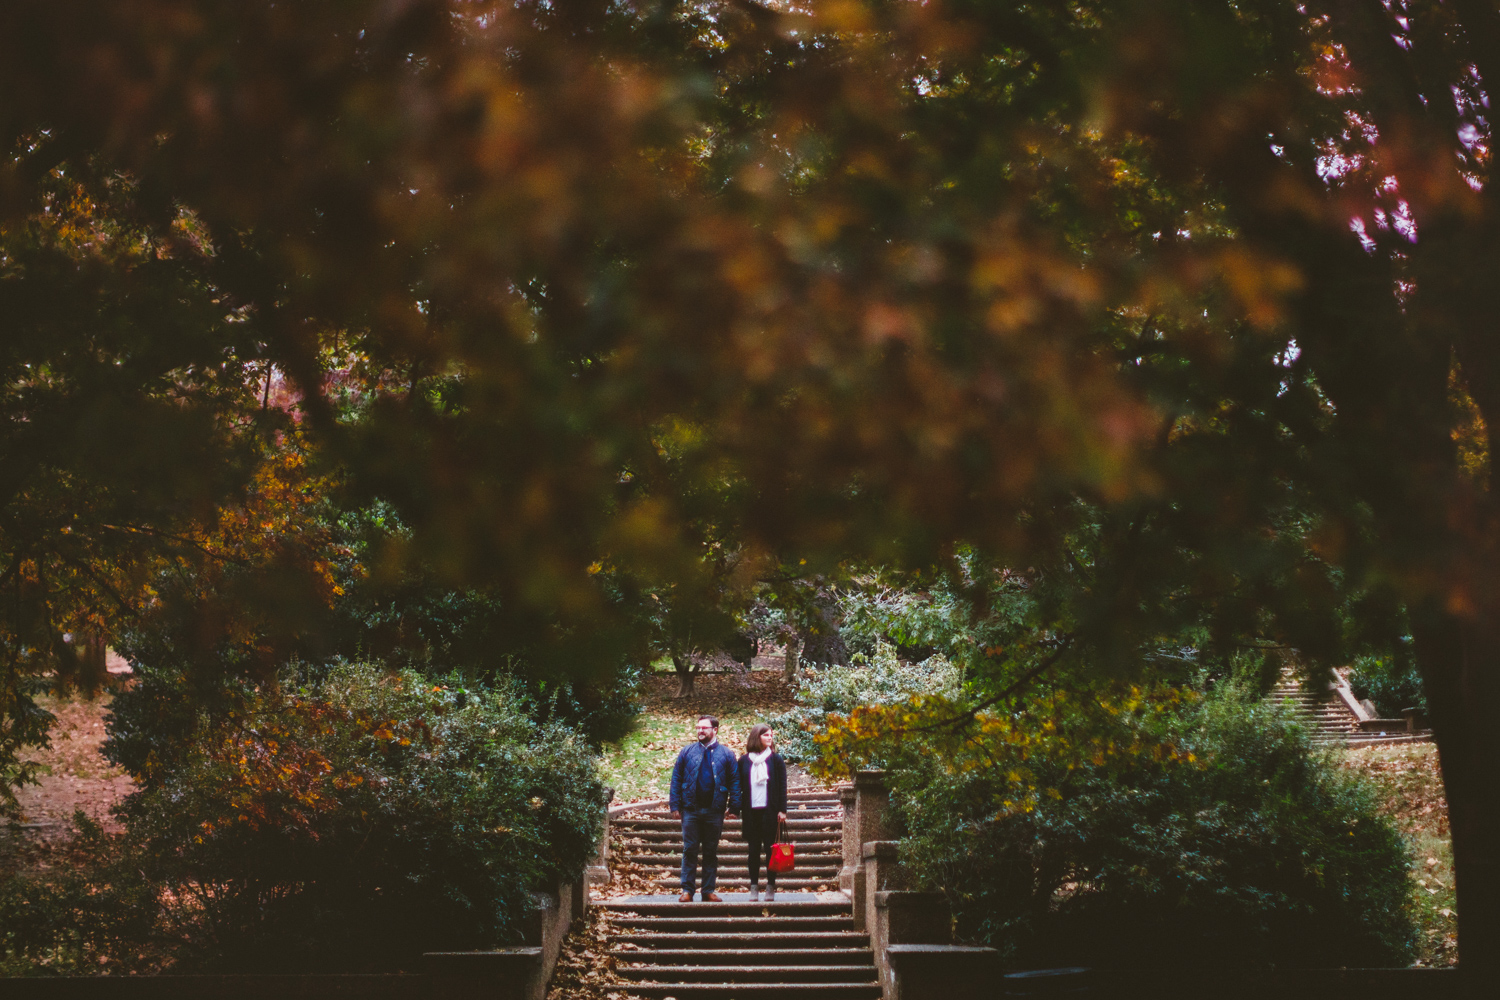 011 - engagement portraits in Meridian Hill Park in washington dc.jpg